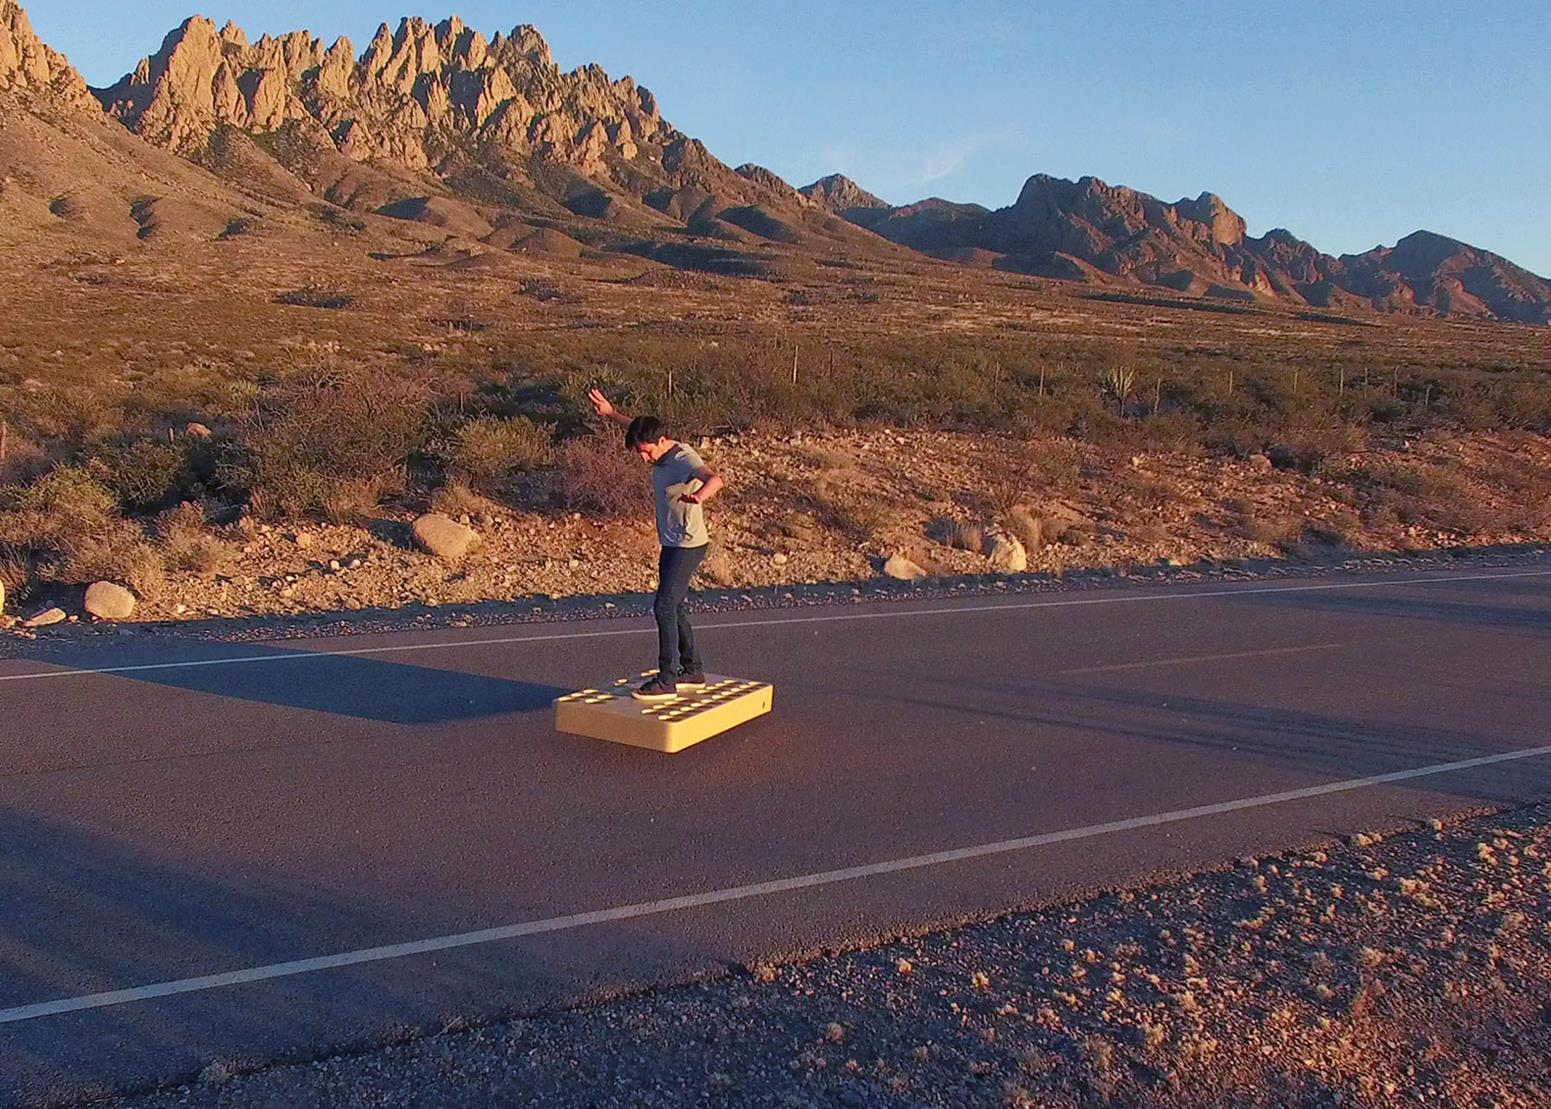 2-hoverboard-new hover board -buy a hover board-hover board replica-working hover board